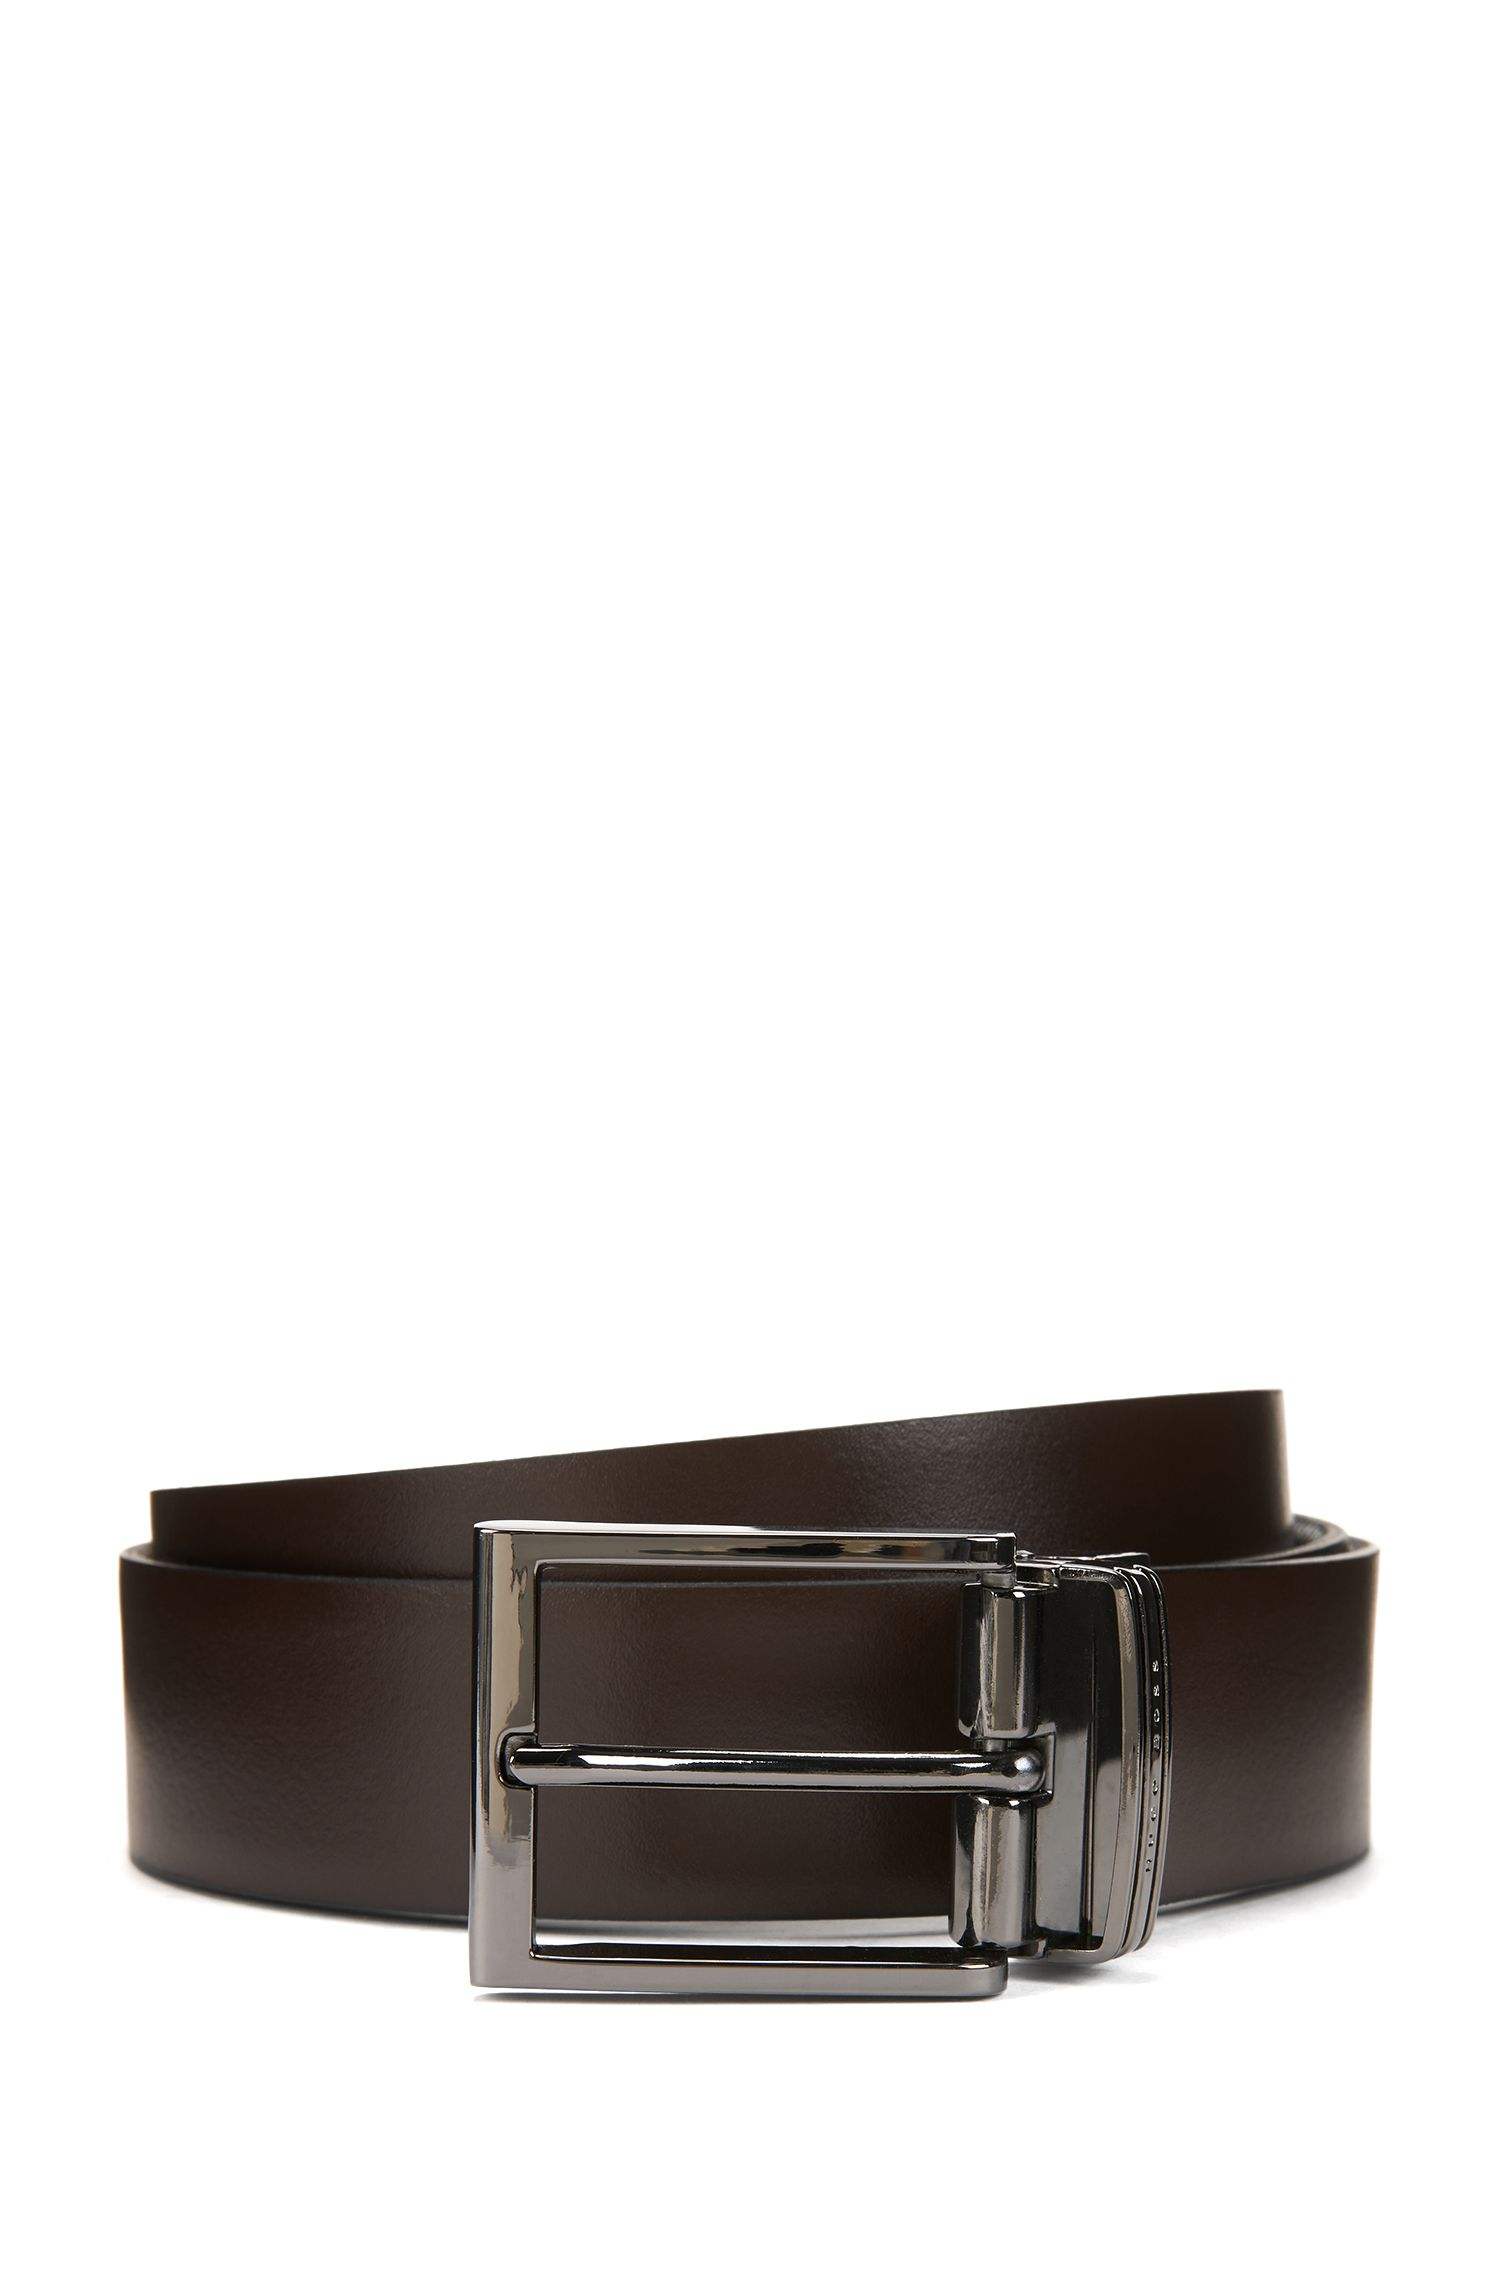 Reversible leather belt with double buckle